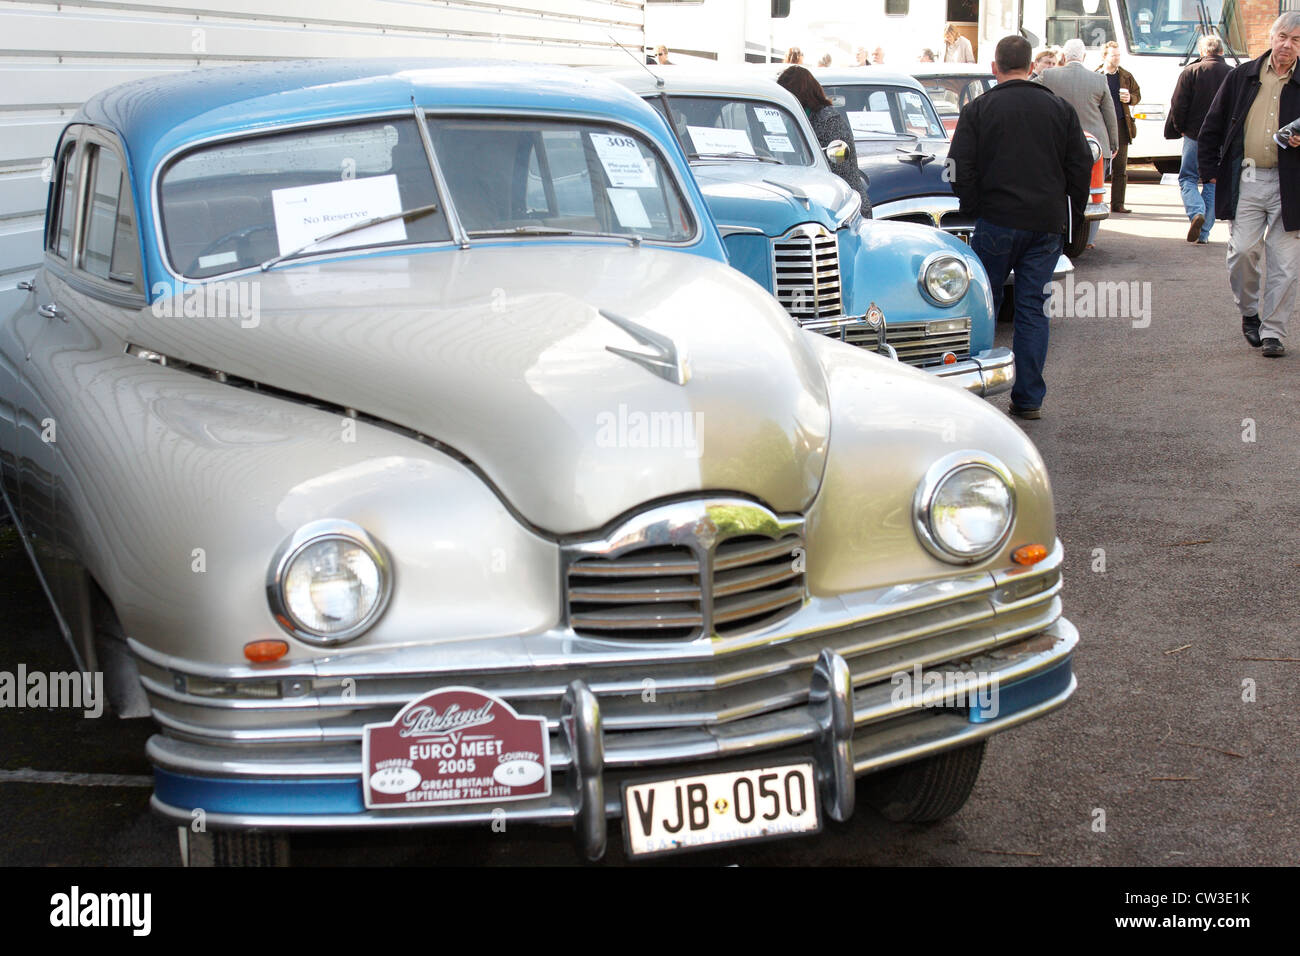 A number of 1940s vintage Packard cars form part of a classic car ...